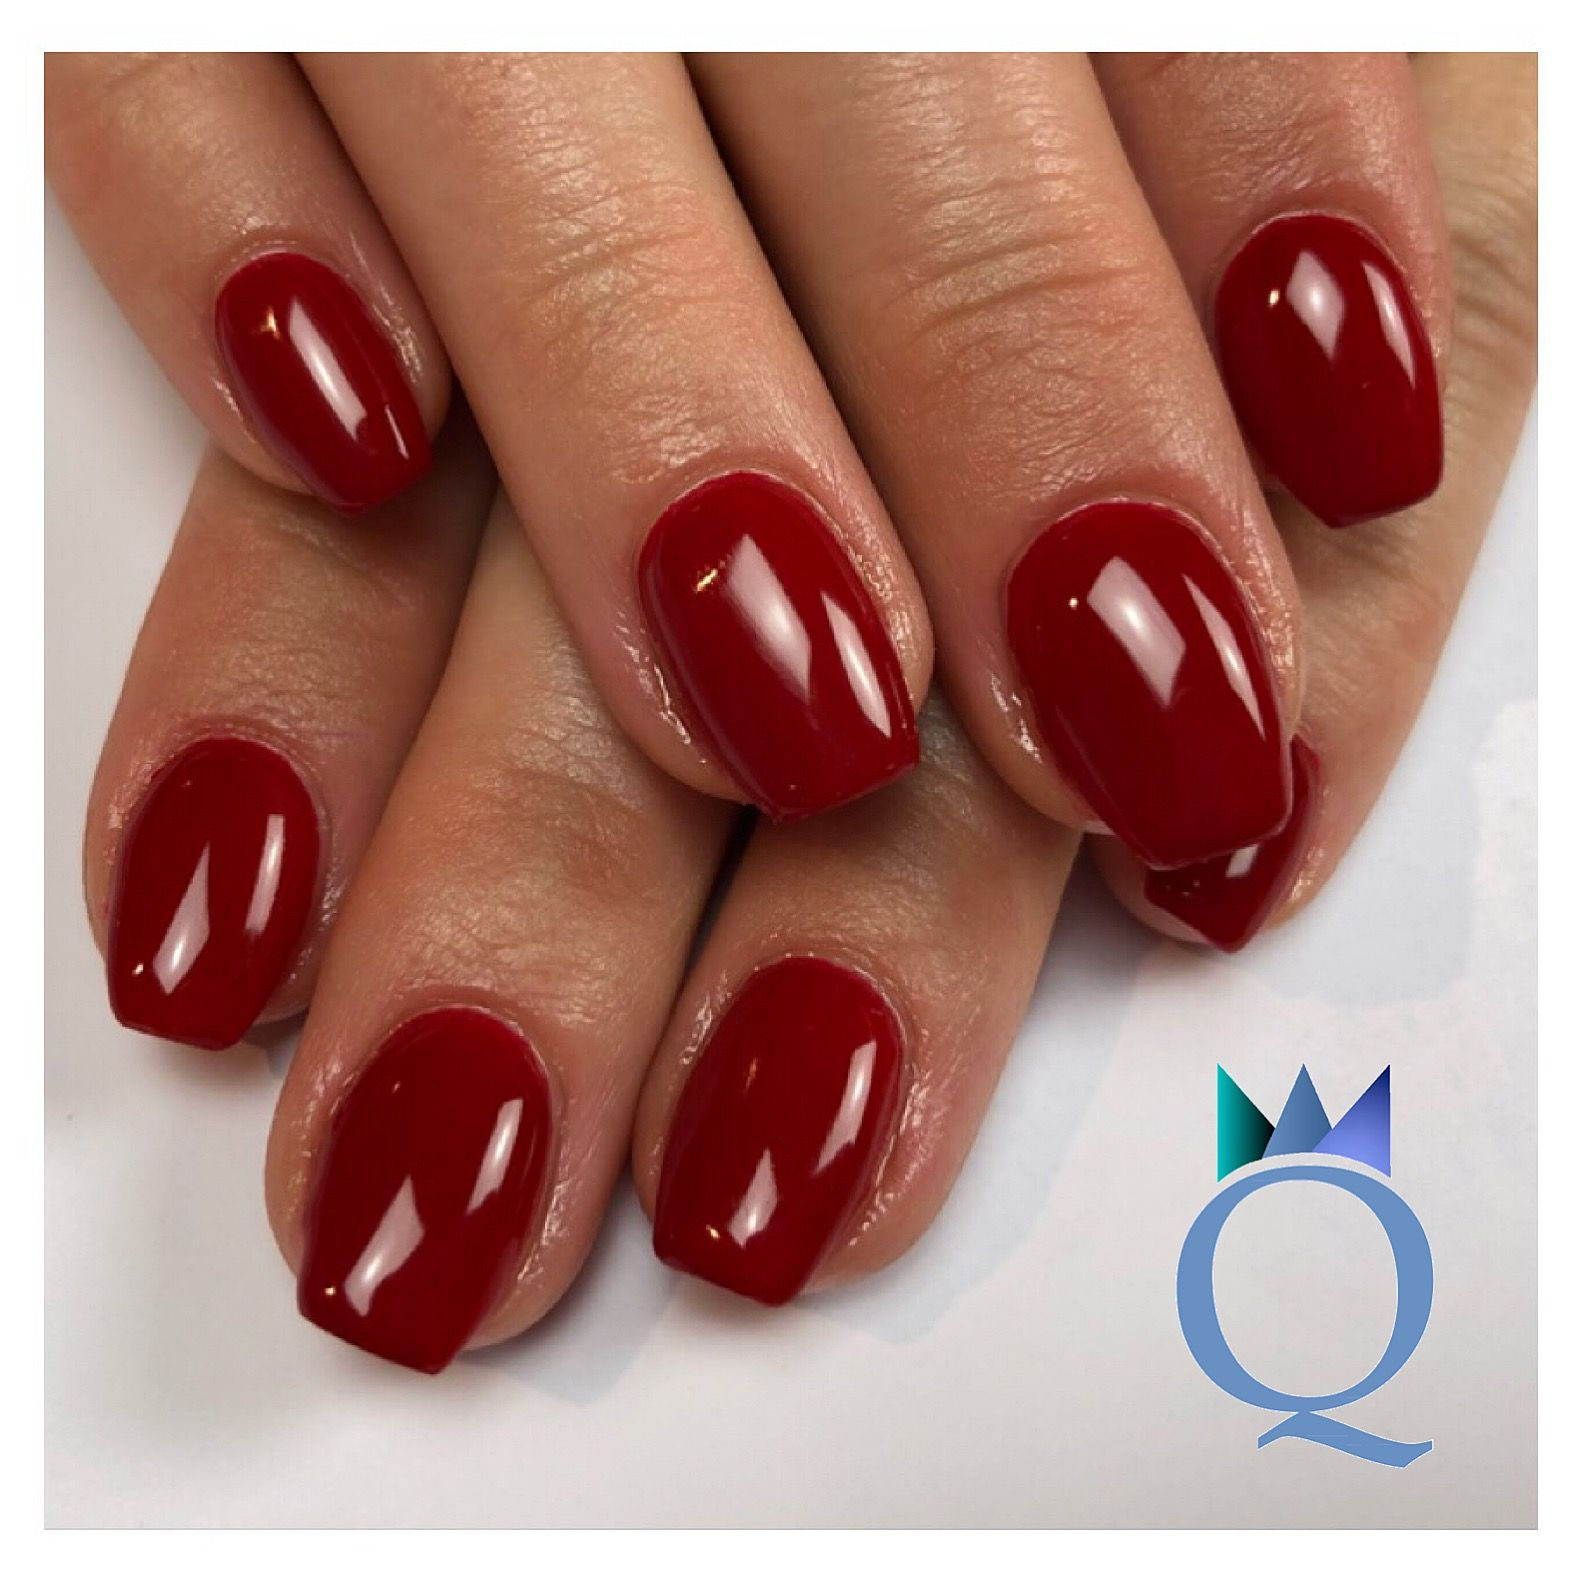 Bezaubernd Nageldesign Rot Galerie Von #coffinnails #gelnails #nails #red #ballerinaform #gelnägel #nägel